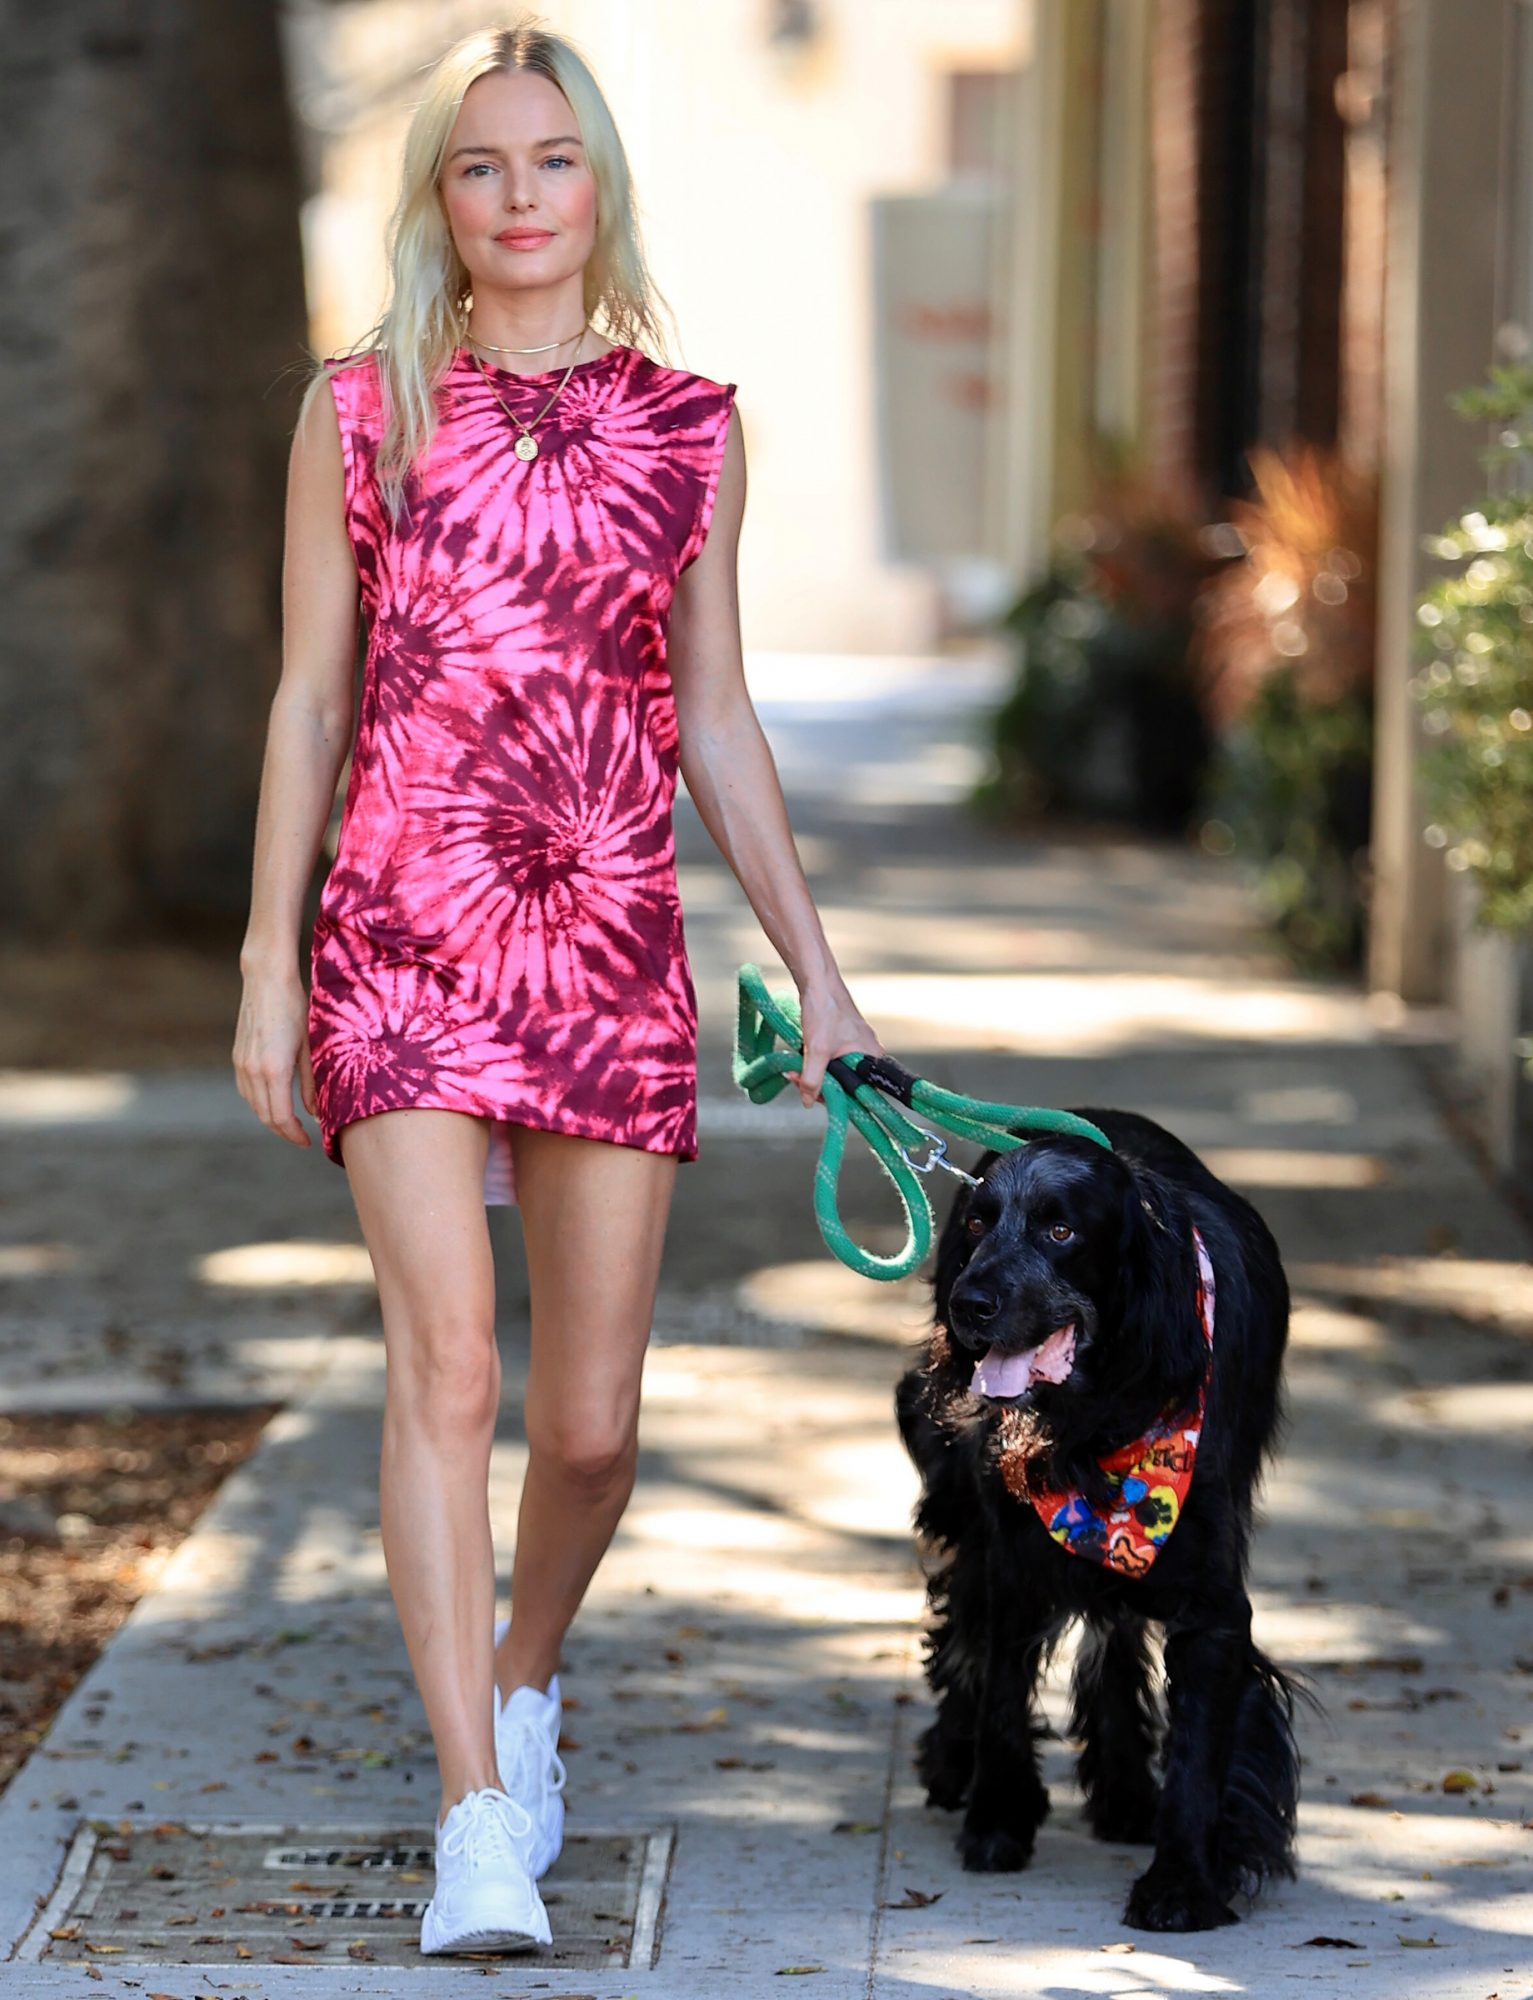 Kate Bosworth stuns in a Tie Dye dress walking her adorable dog